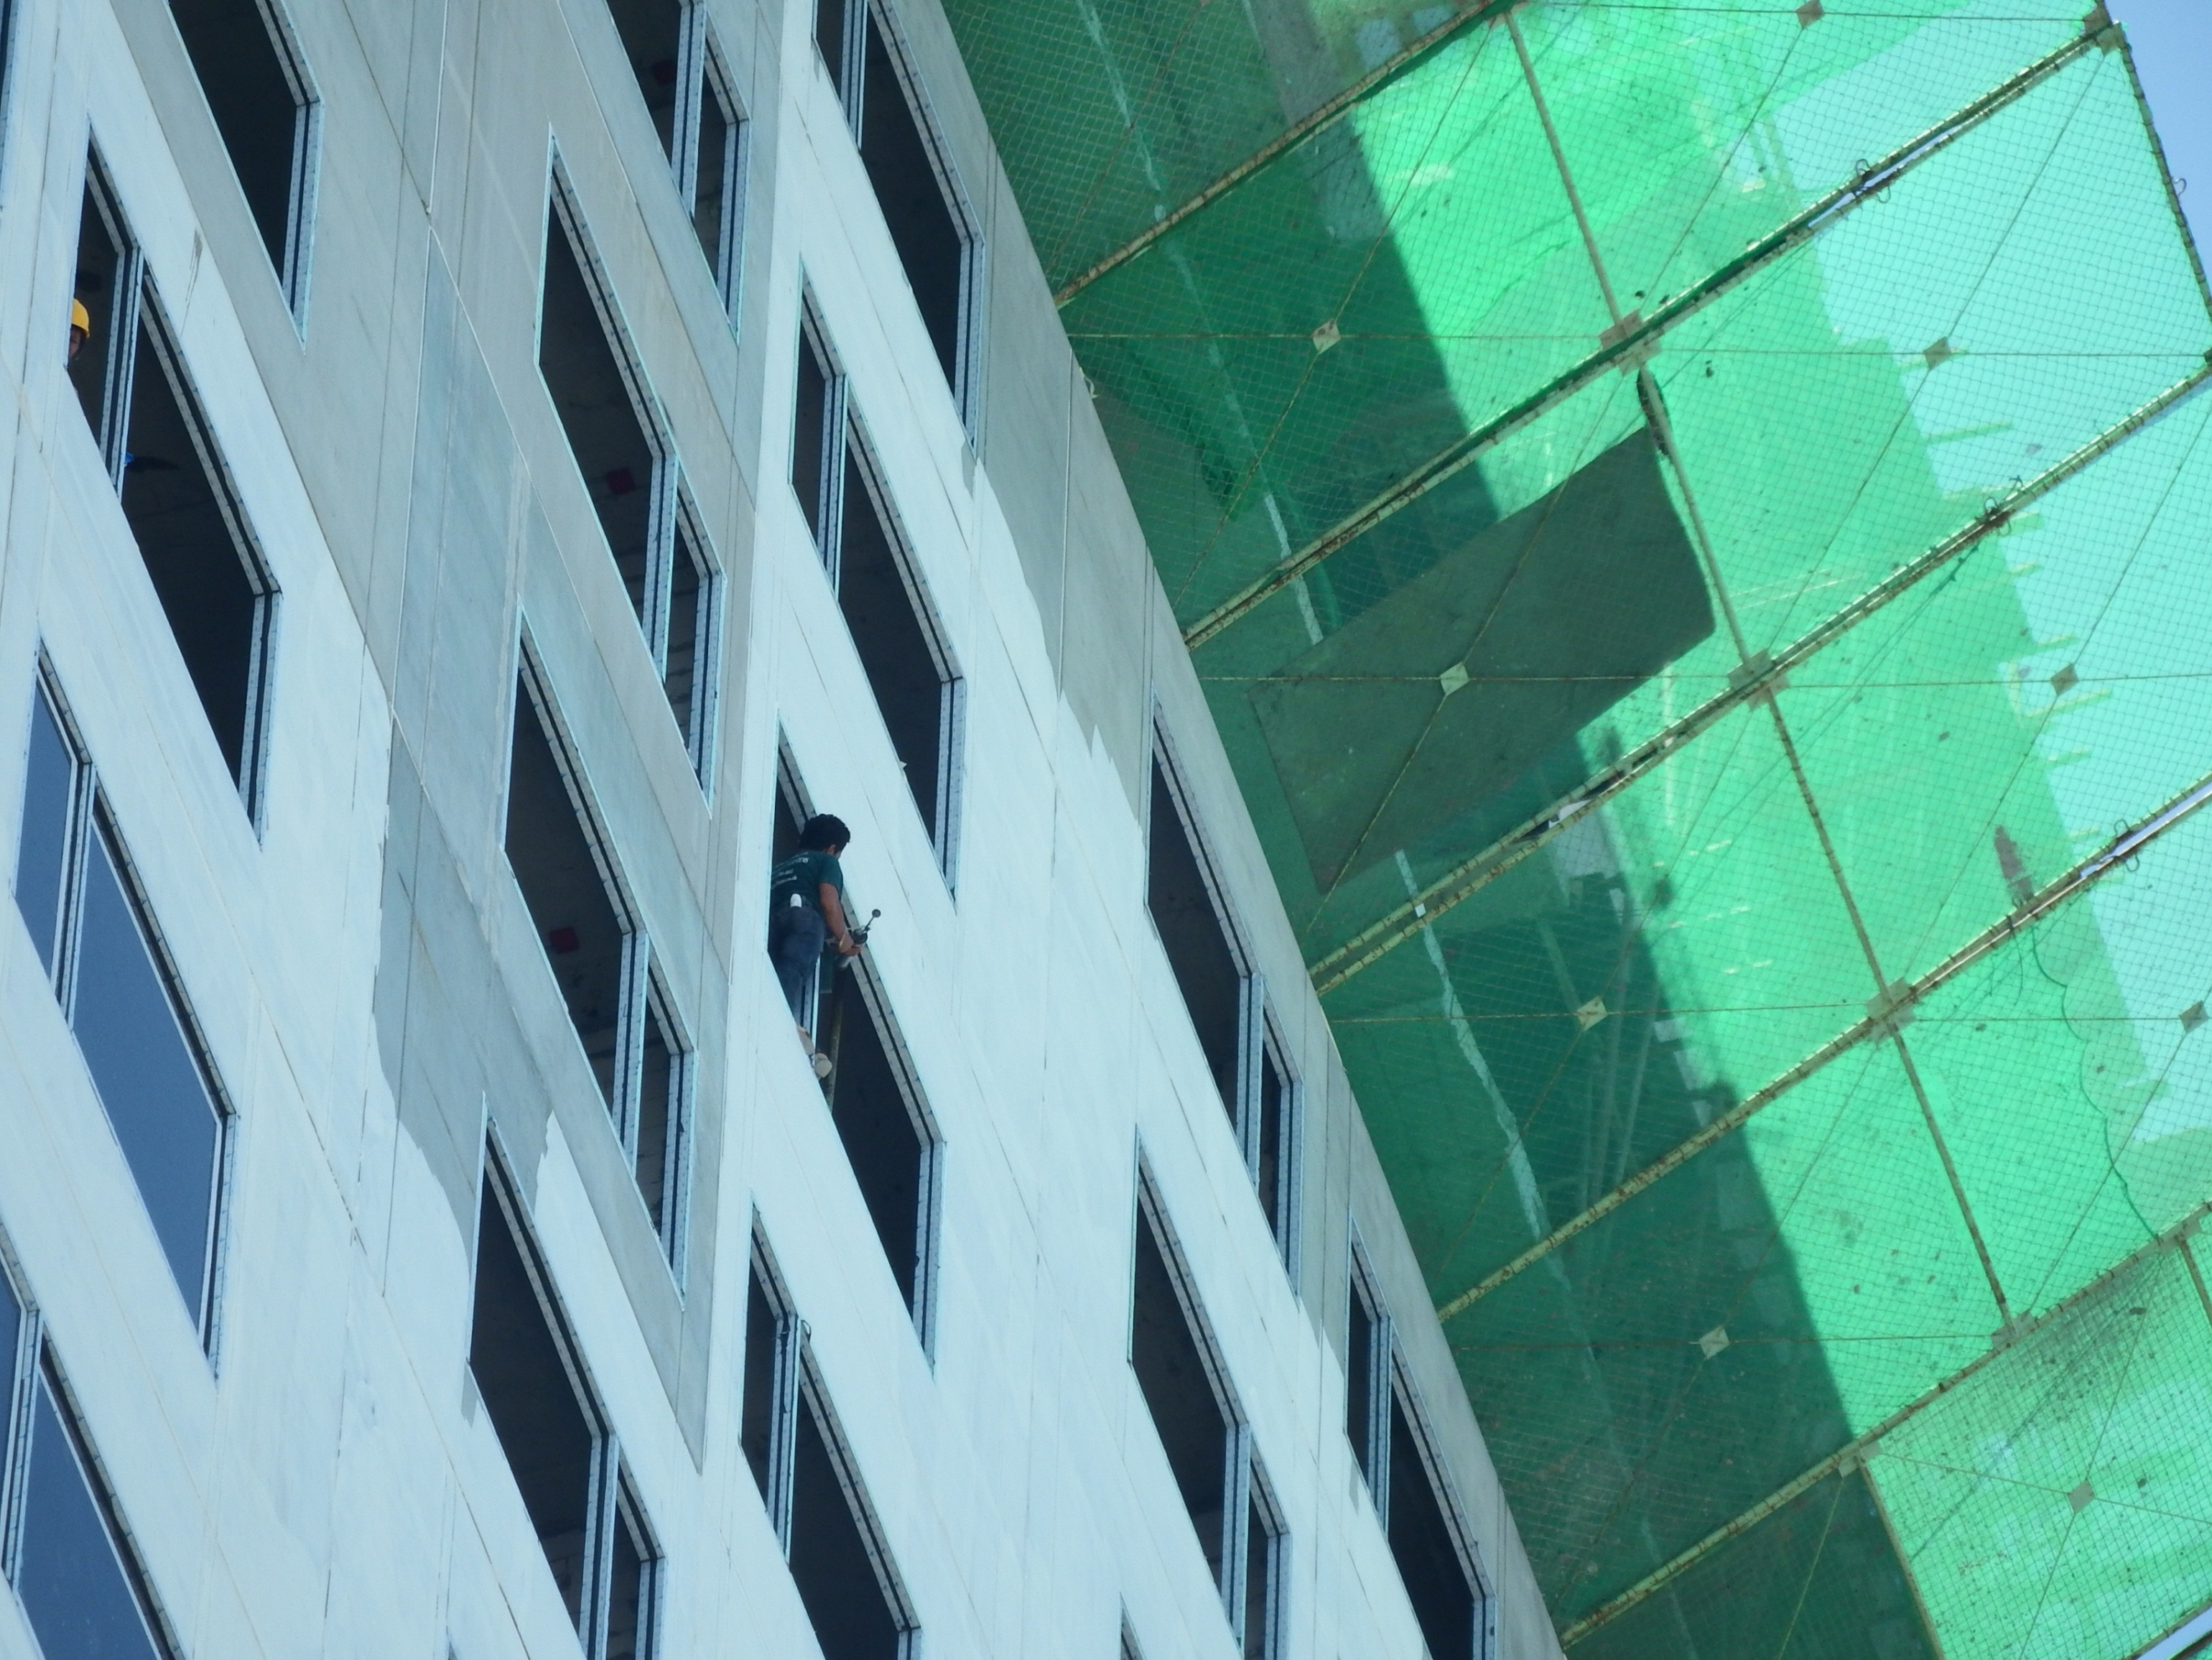 Construction worker high up photo